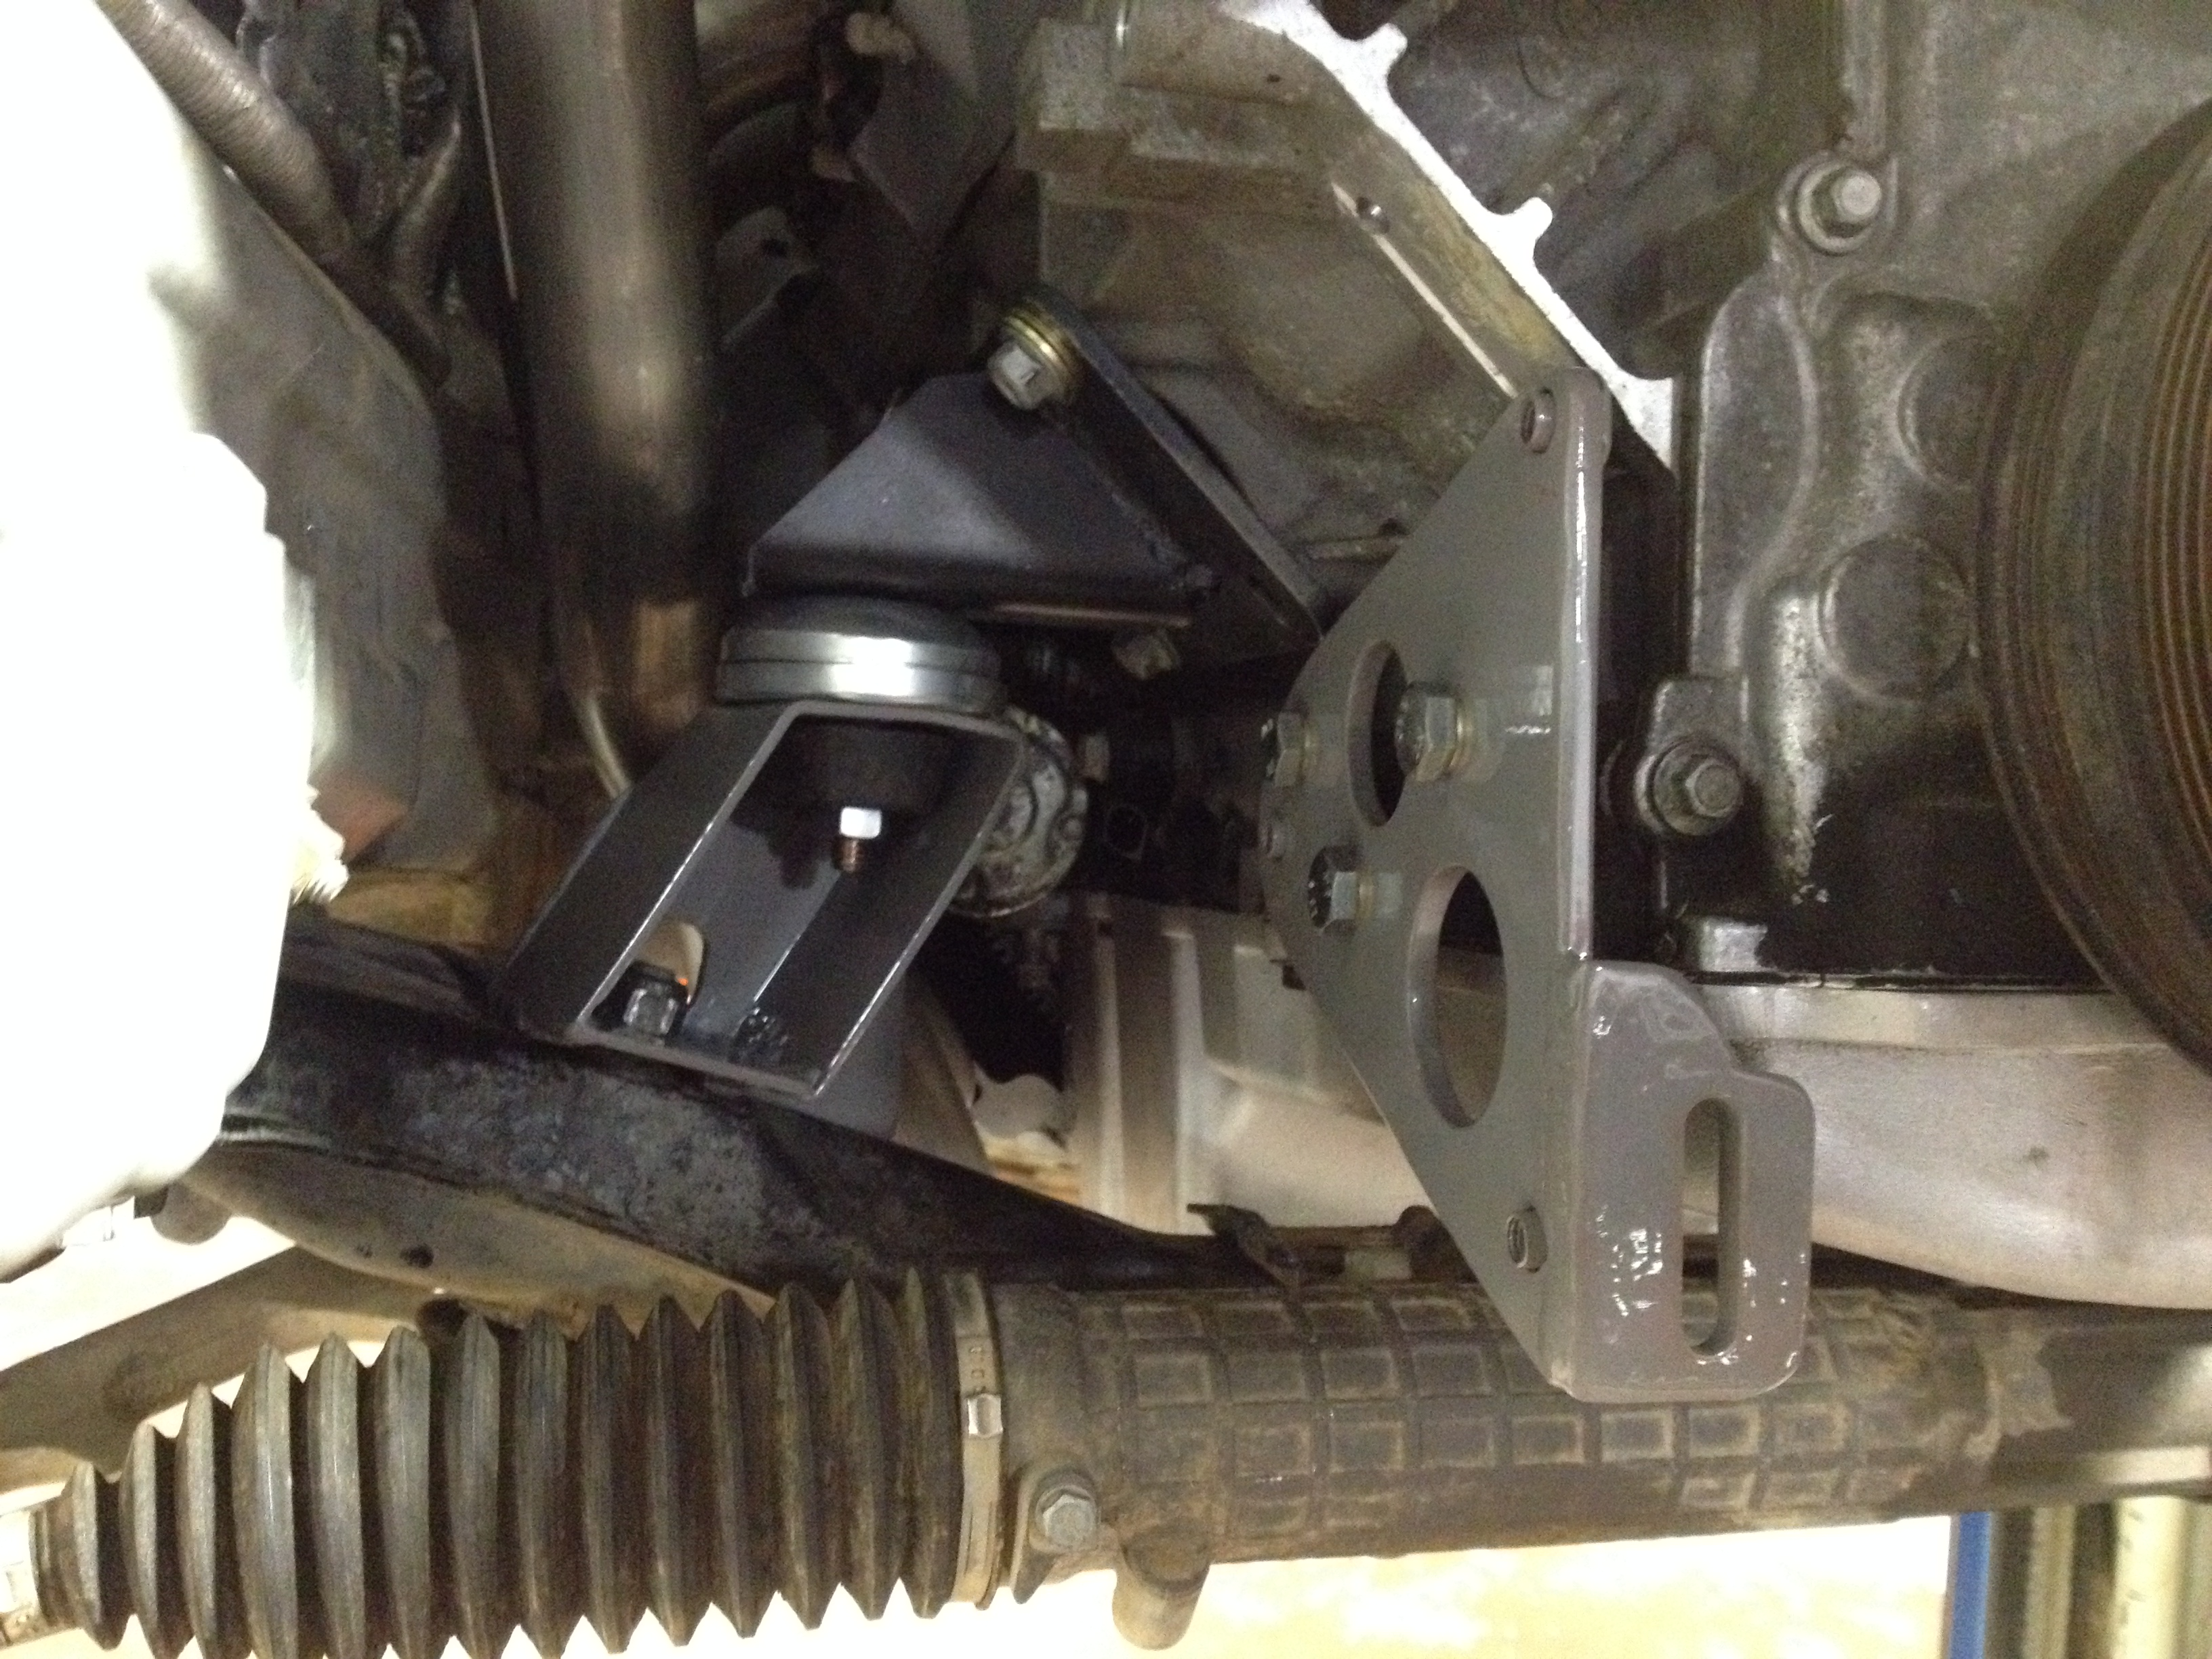 E46 lsx motor mount 3 santa fe garage for Motor mount repair estimate